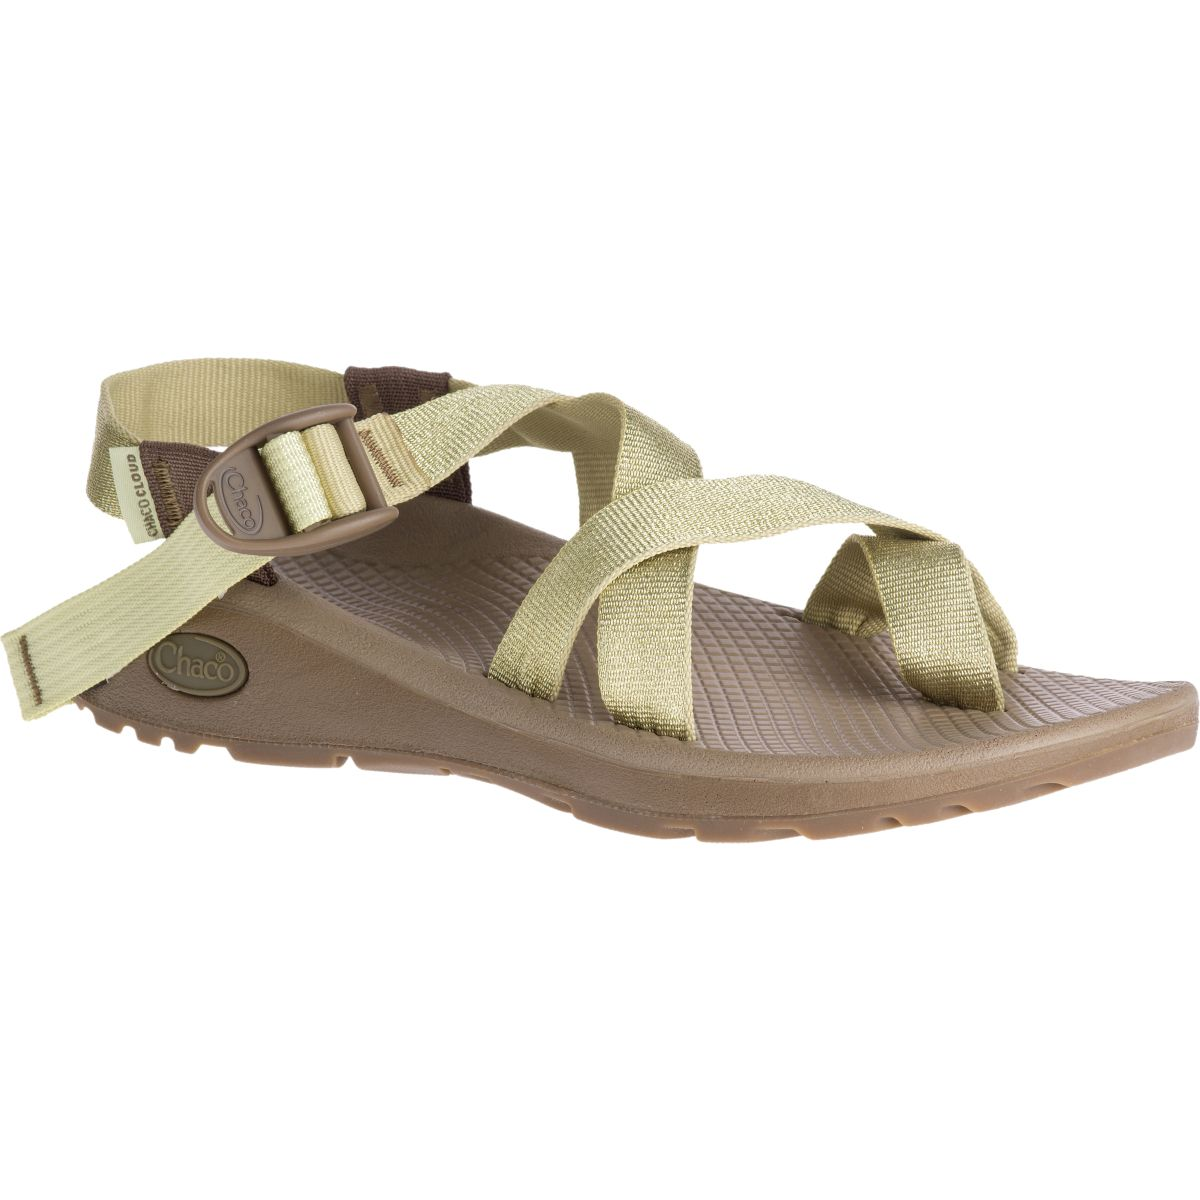 48118f24ad53 Chaco ZCloud 2 Sandal - Women s